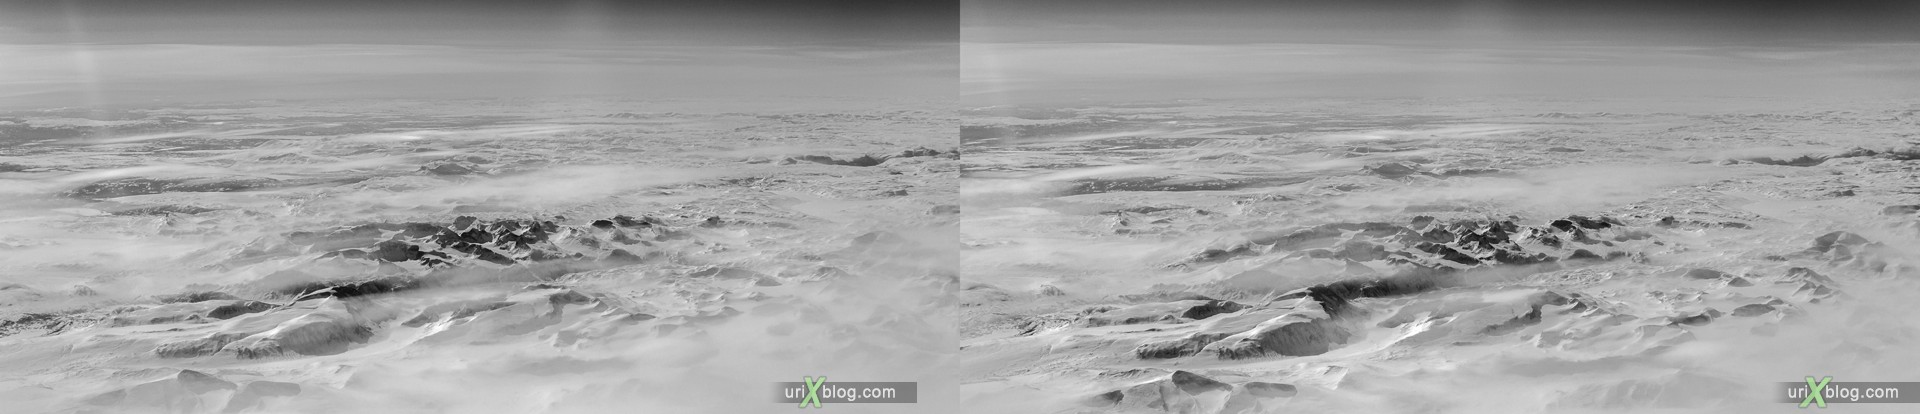 2013, Norway, mountains, panorama, airplane, black and white, bw, snow, ice, clouds, horizon, 3D, stereo pair, cross-eyed, crossview, cross view stereo pair, stereoscopic